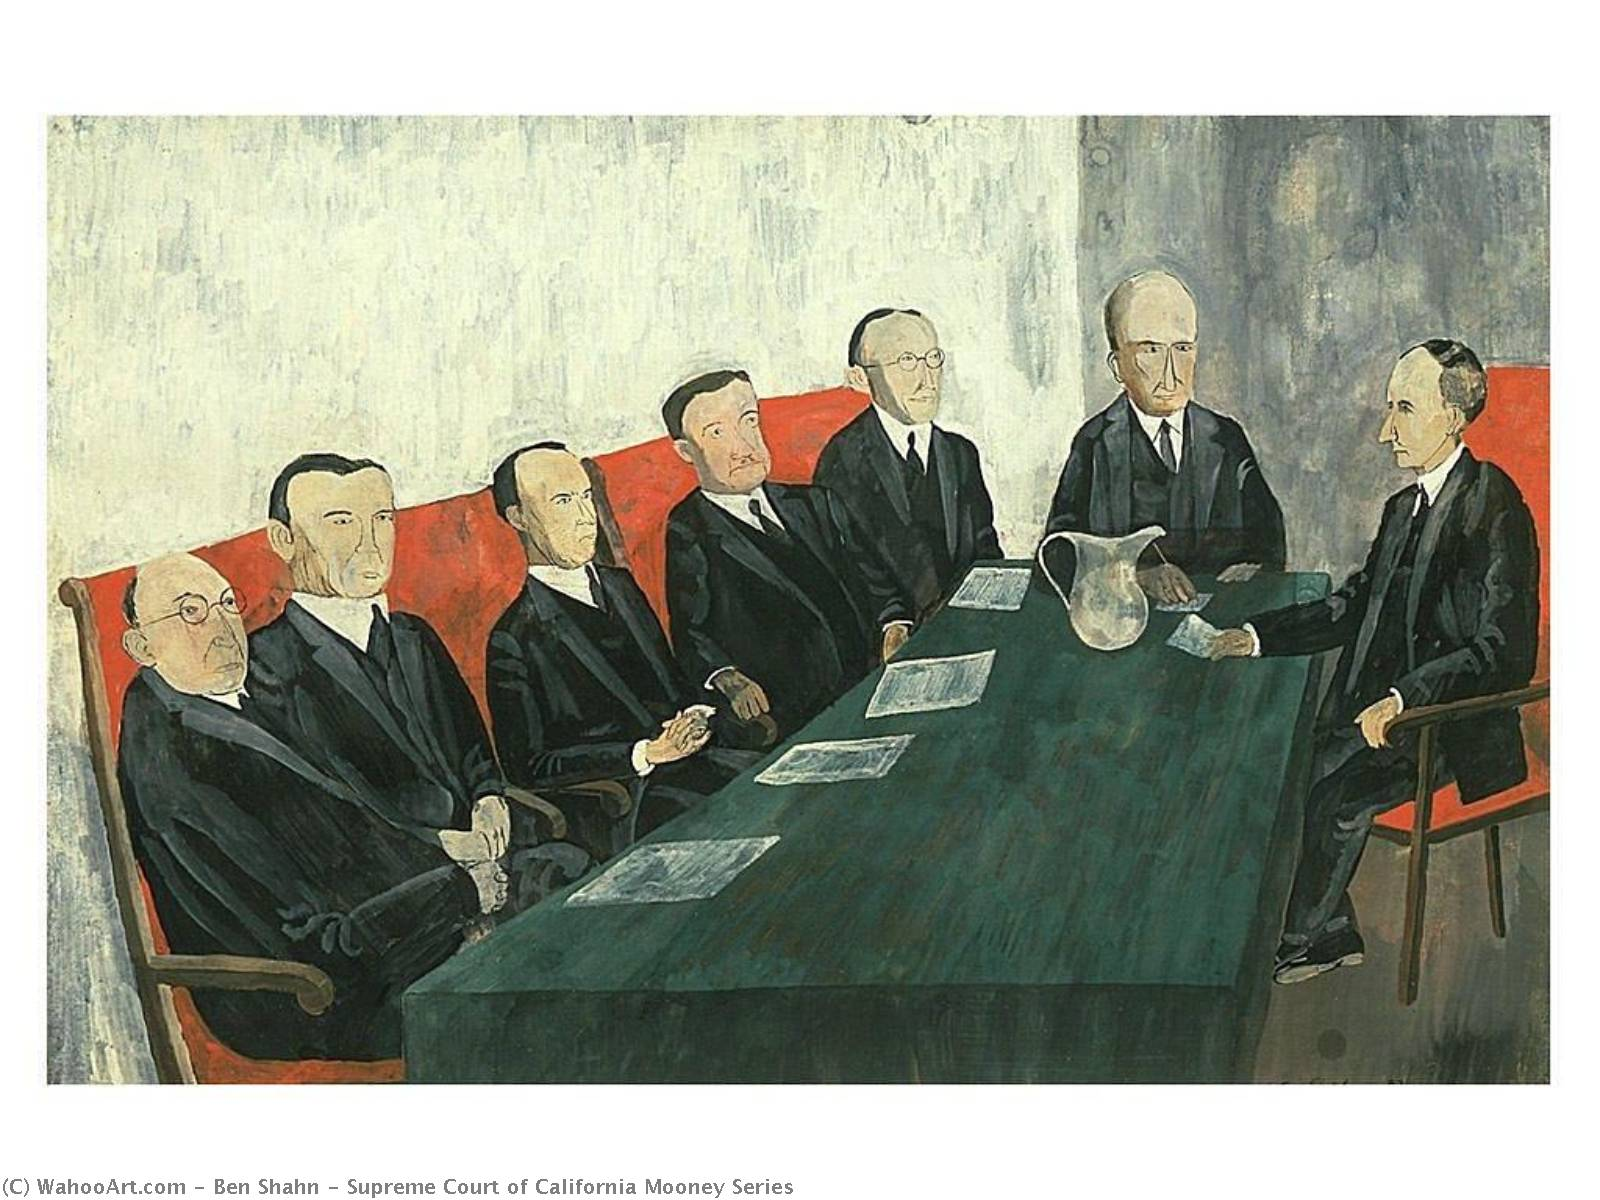 Supreme Court of California Mooney Series, Gouache by Benjamin Shahn (1898-1969, Lithuania)